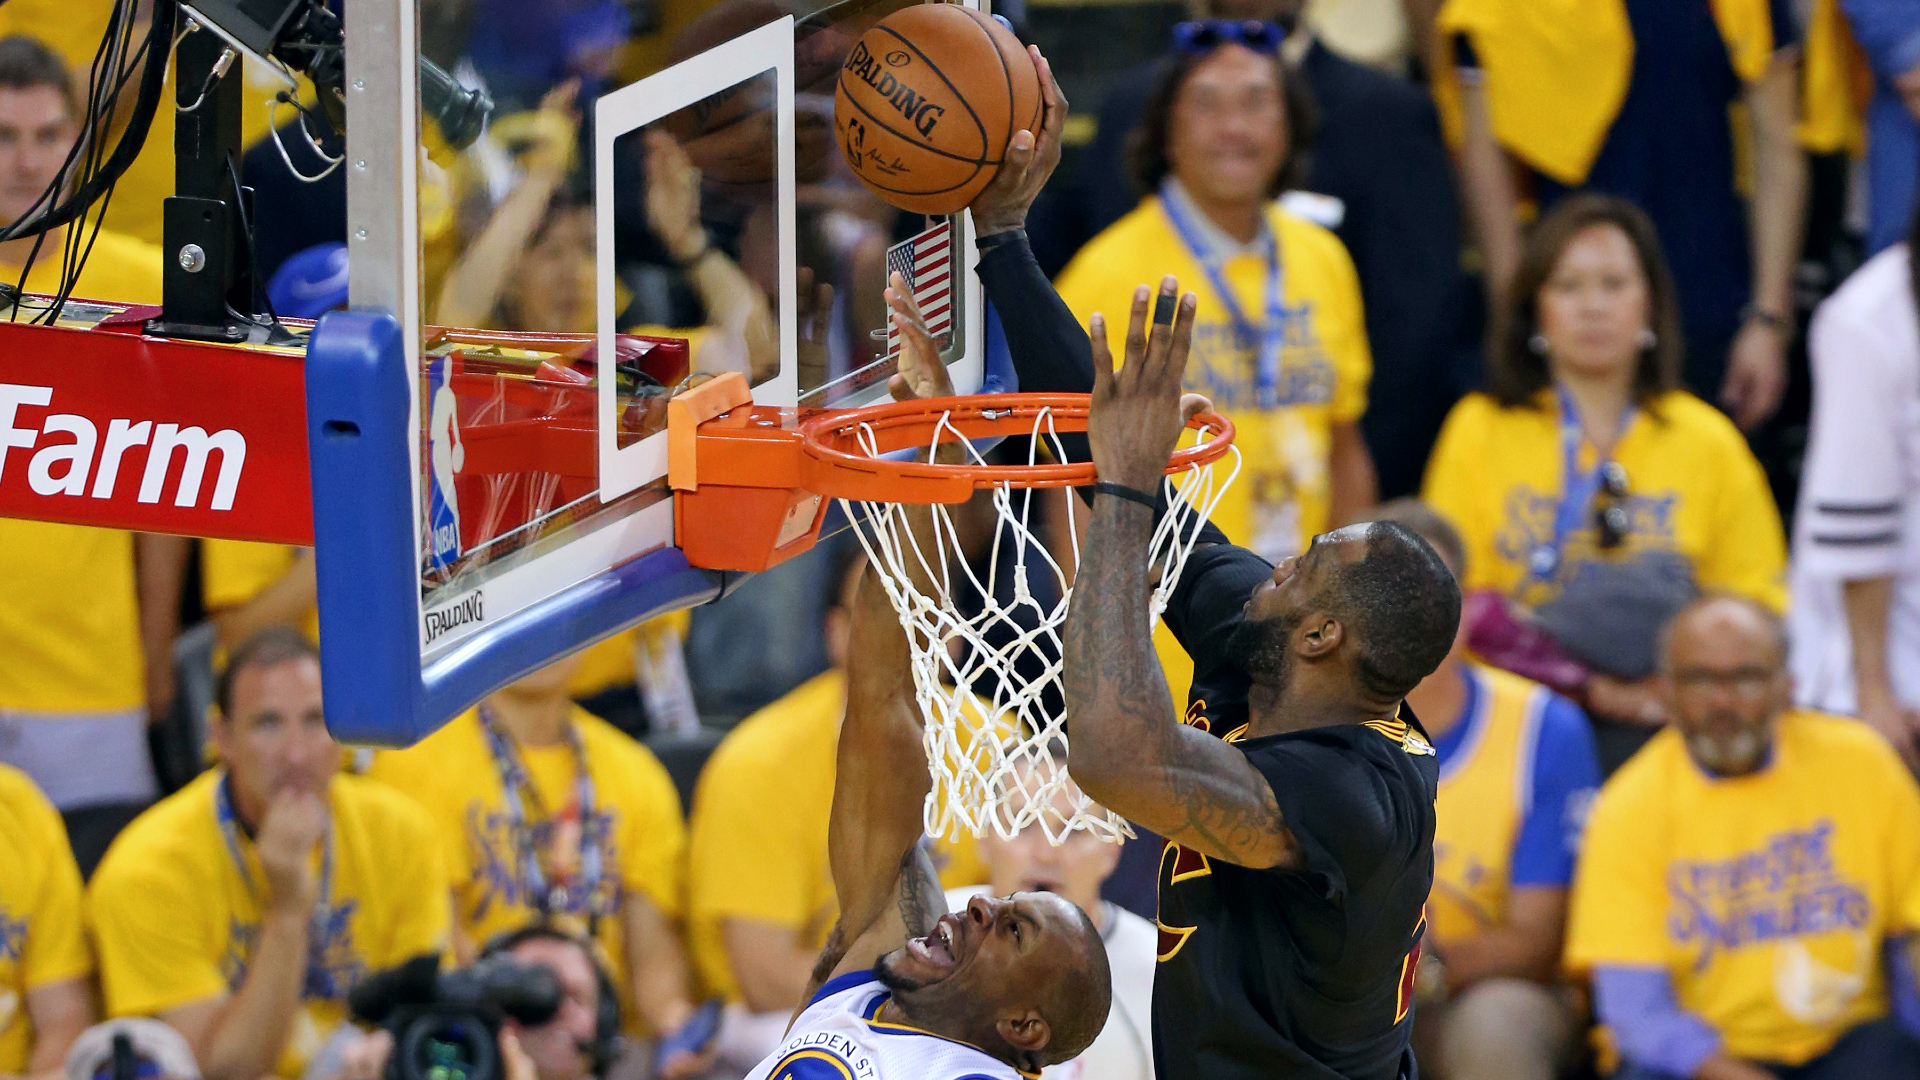 Top NBA Finals moments: LeBron James' chasedown block in Game 7 of 2016 NBA Finals